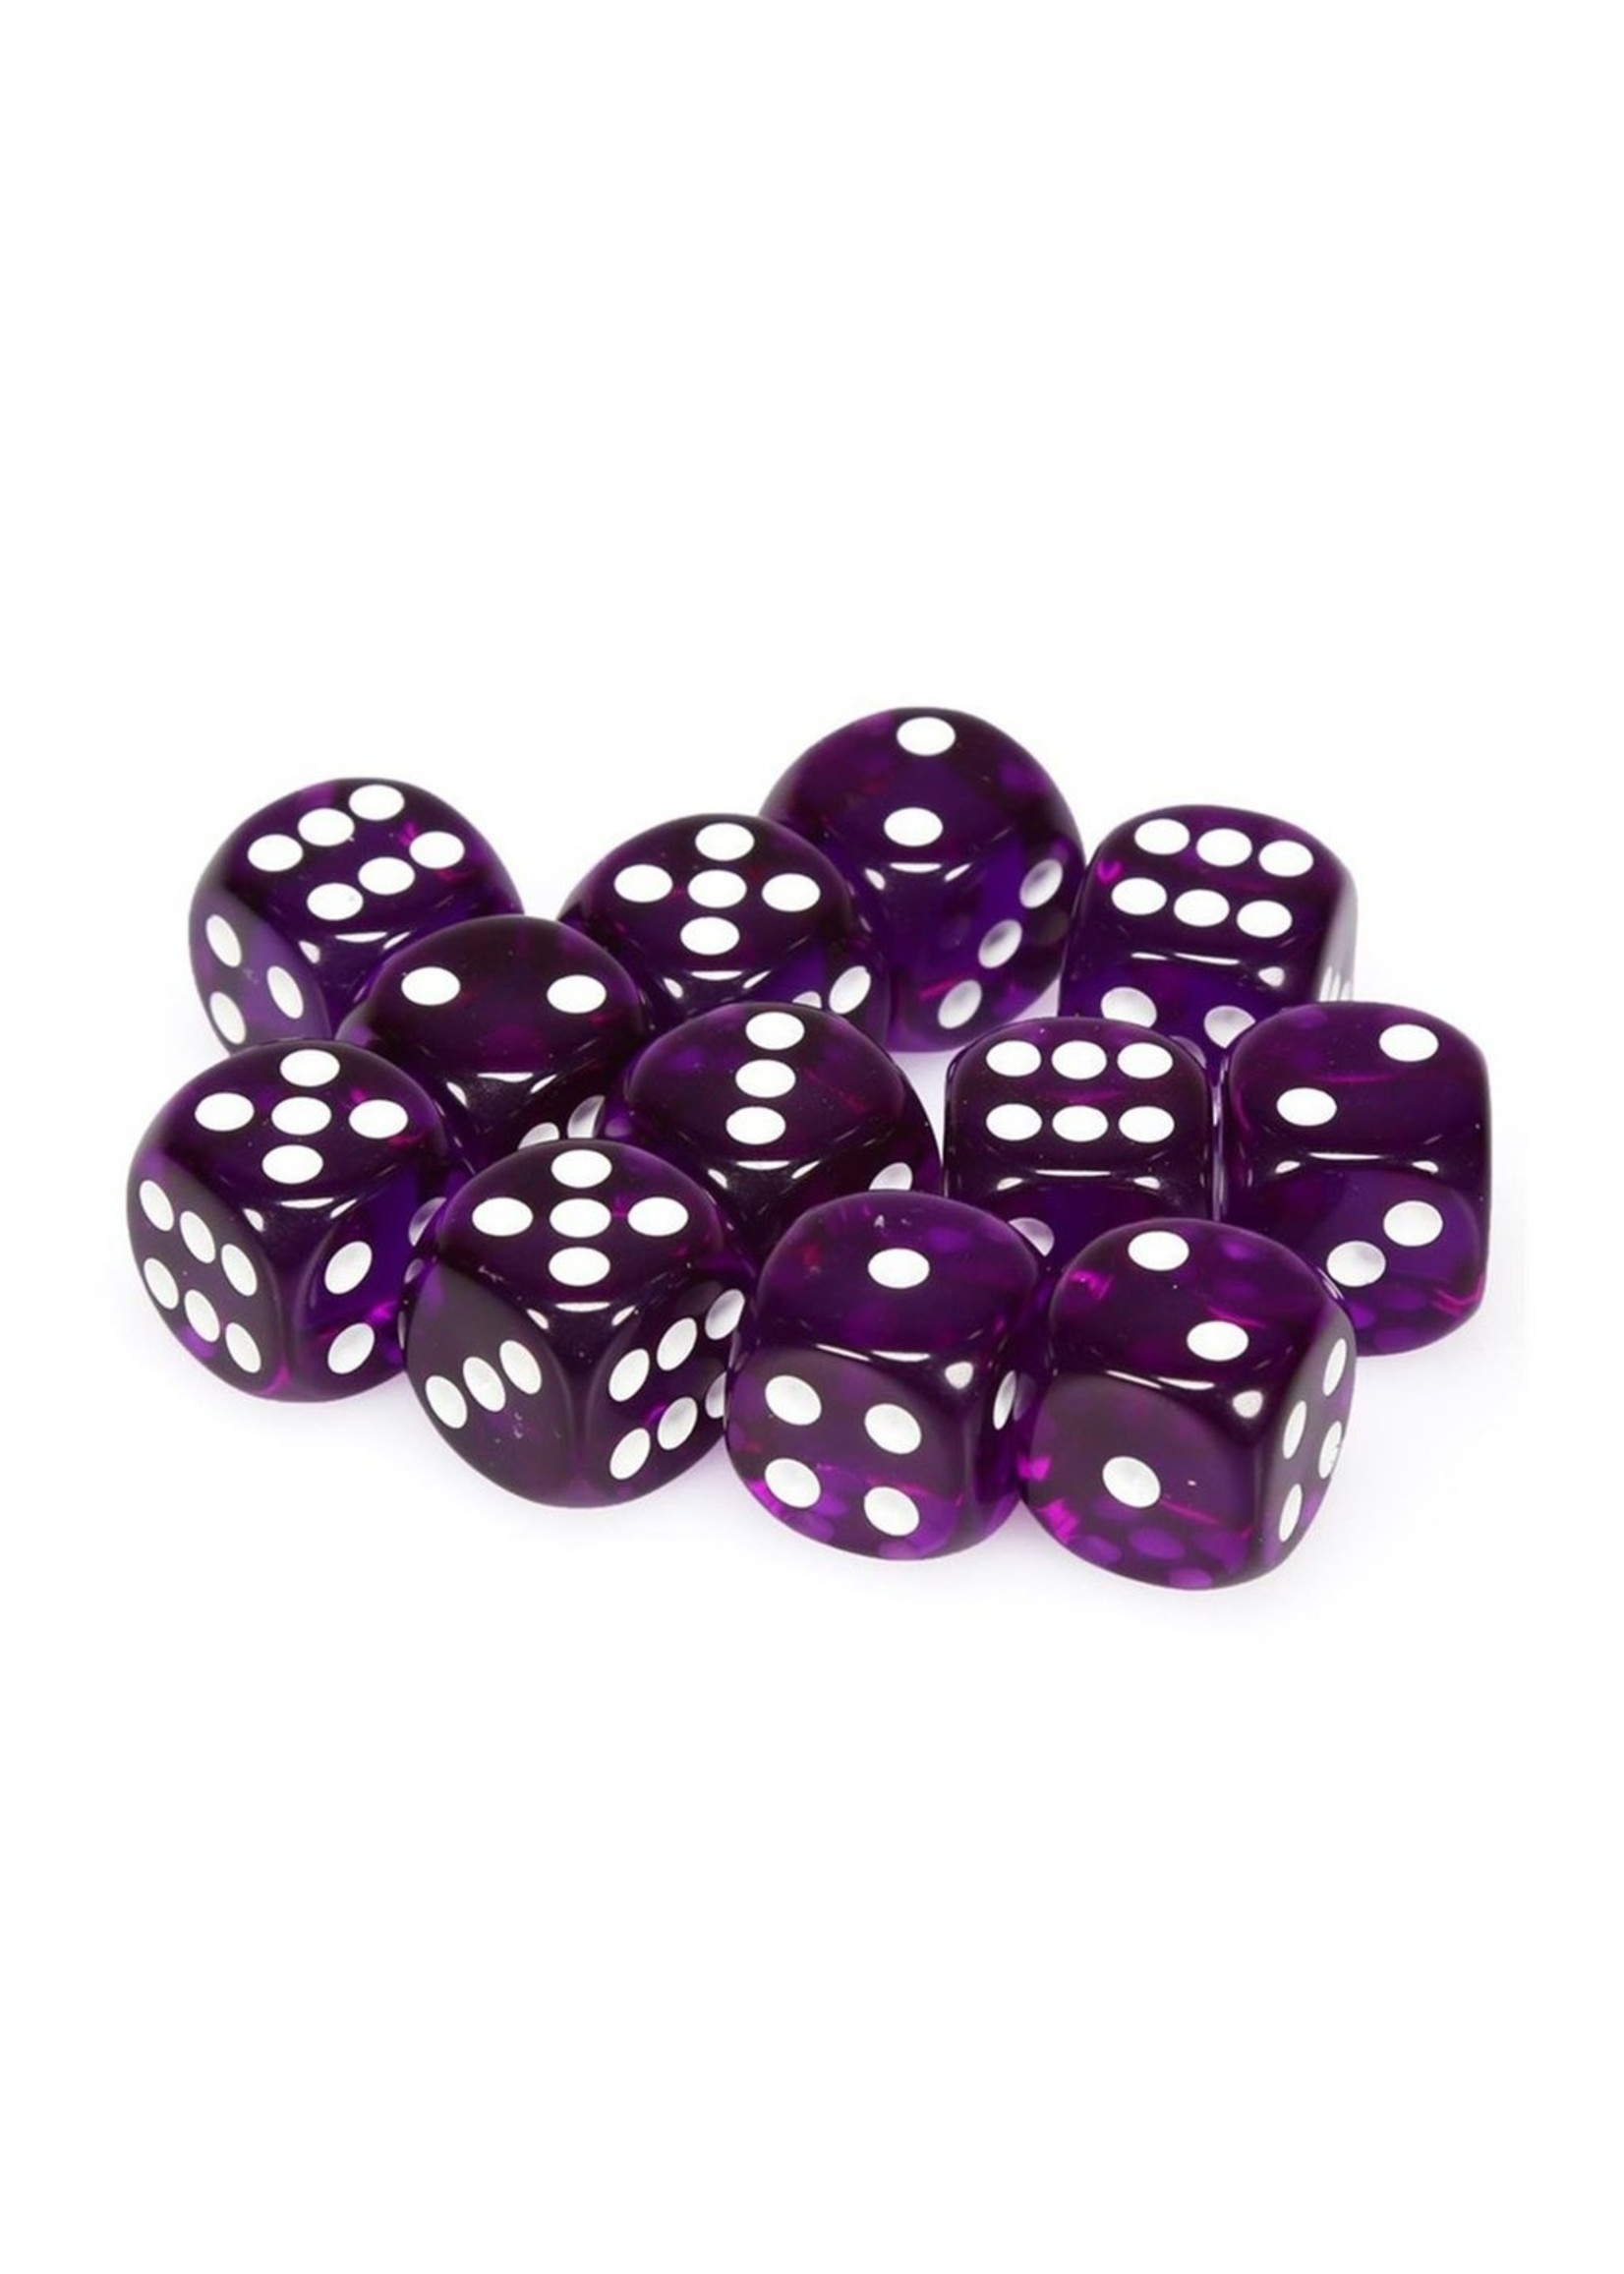 Translucent: 16mm D6 Purple/White (12)